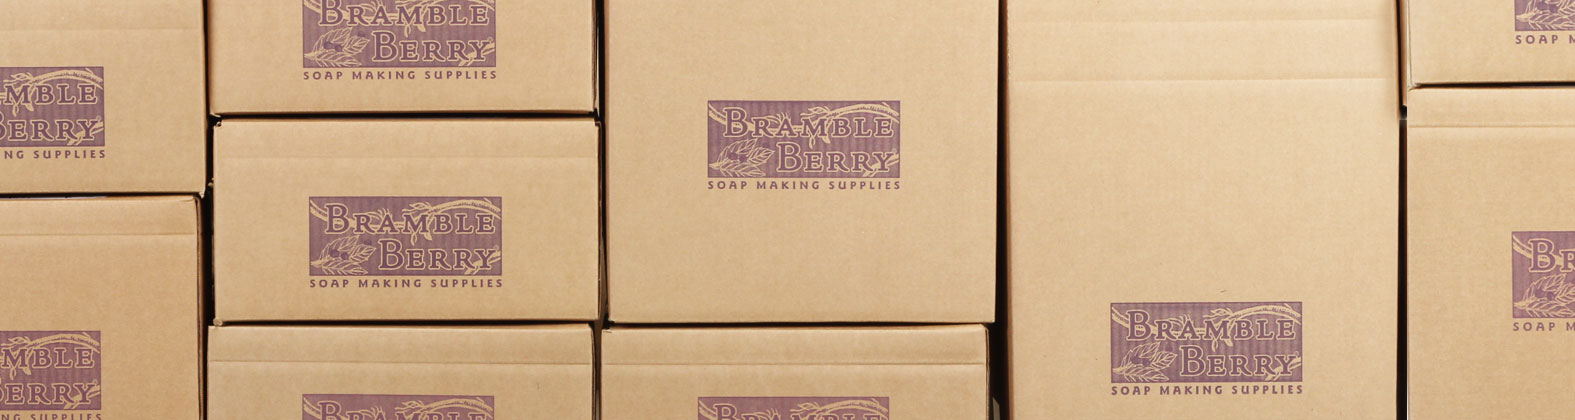 cardboard boxes imprinted with Bramble Berry